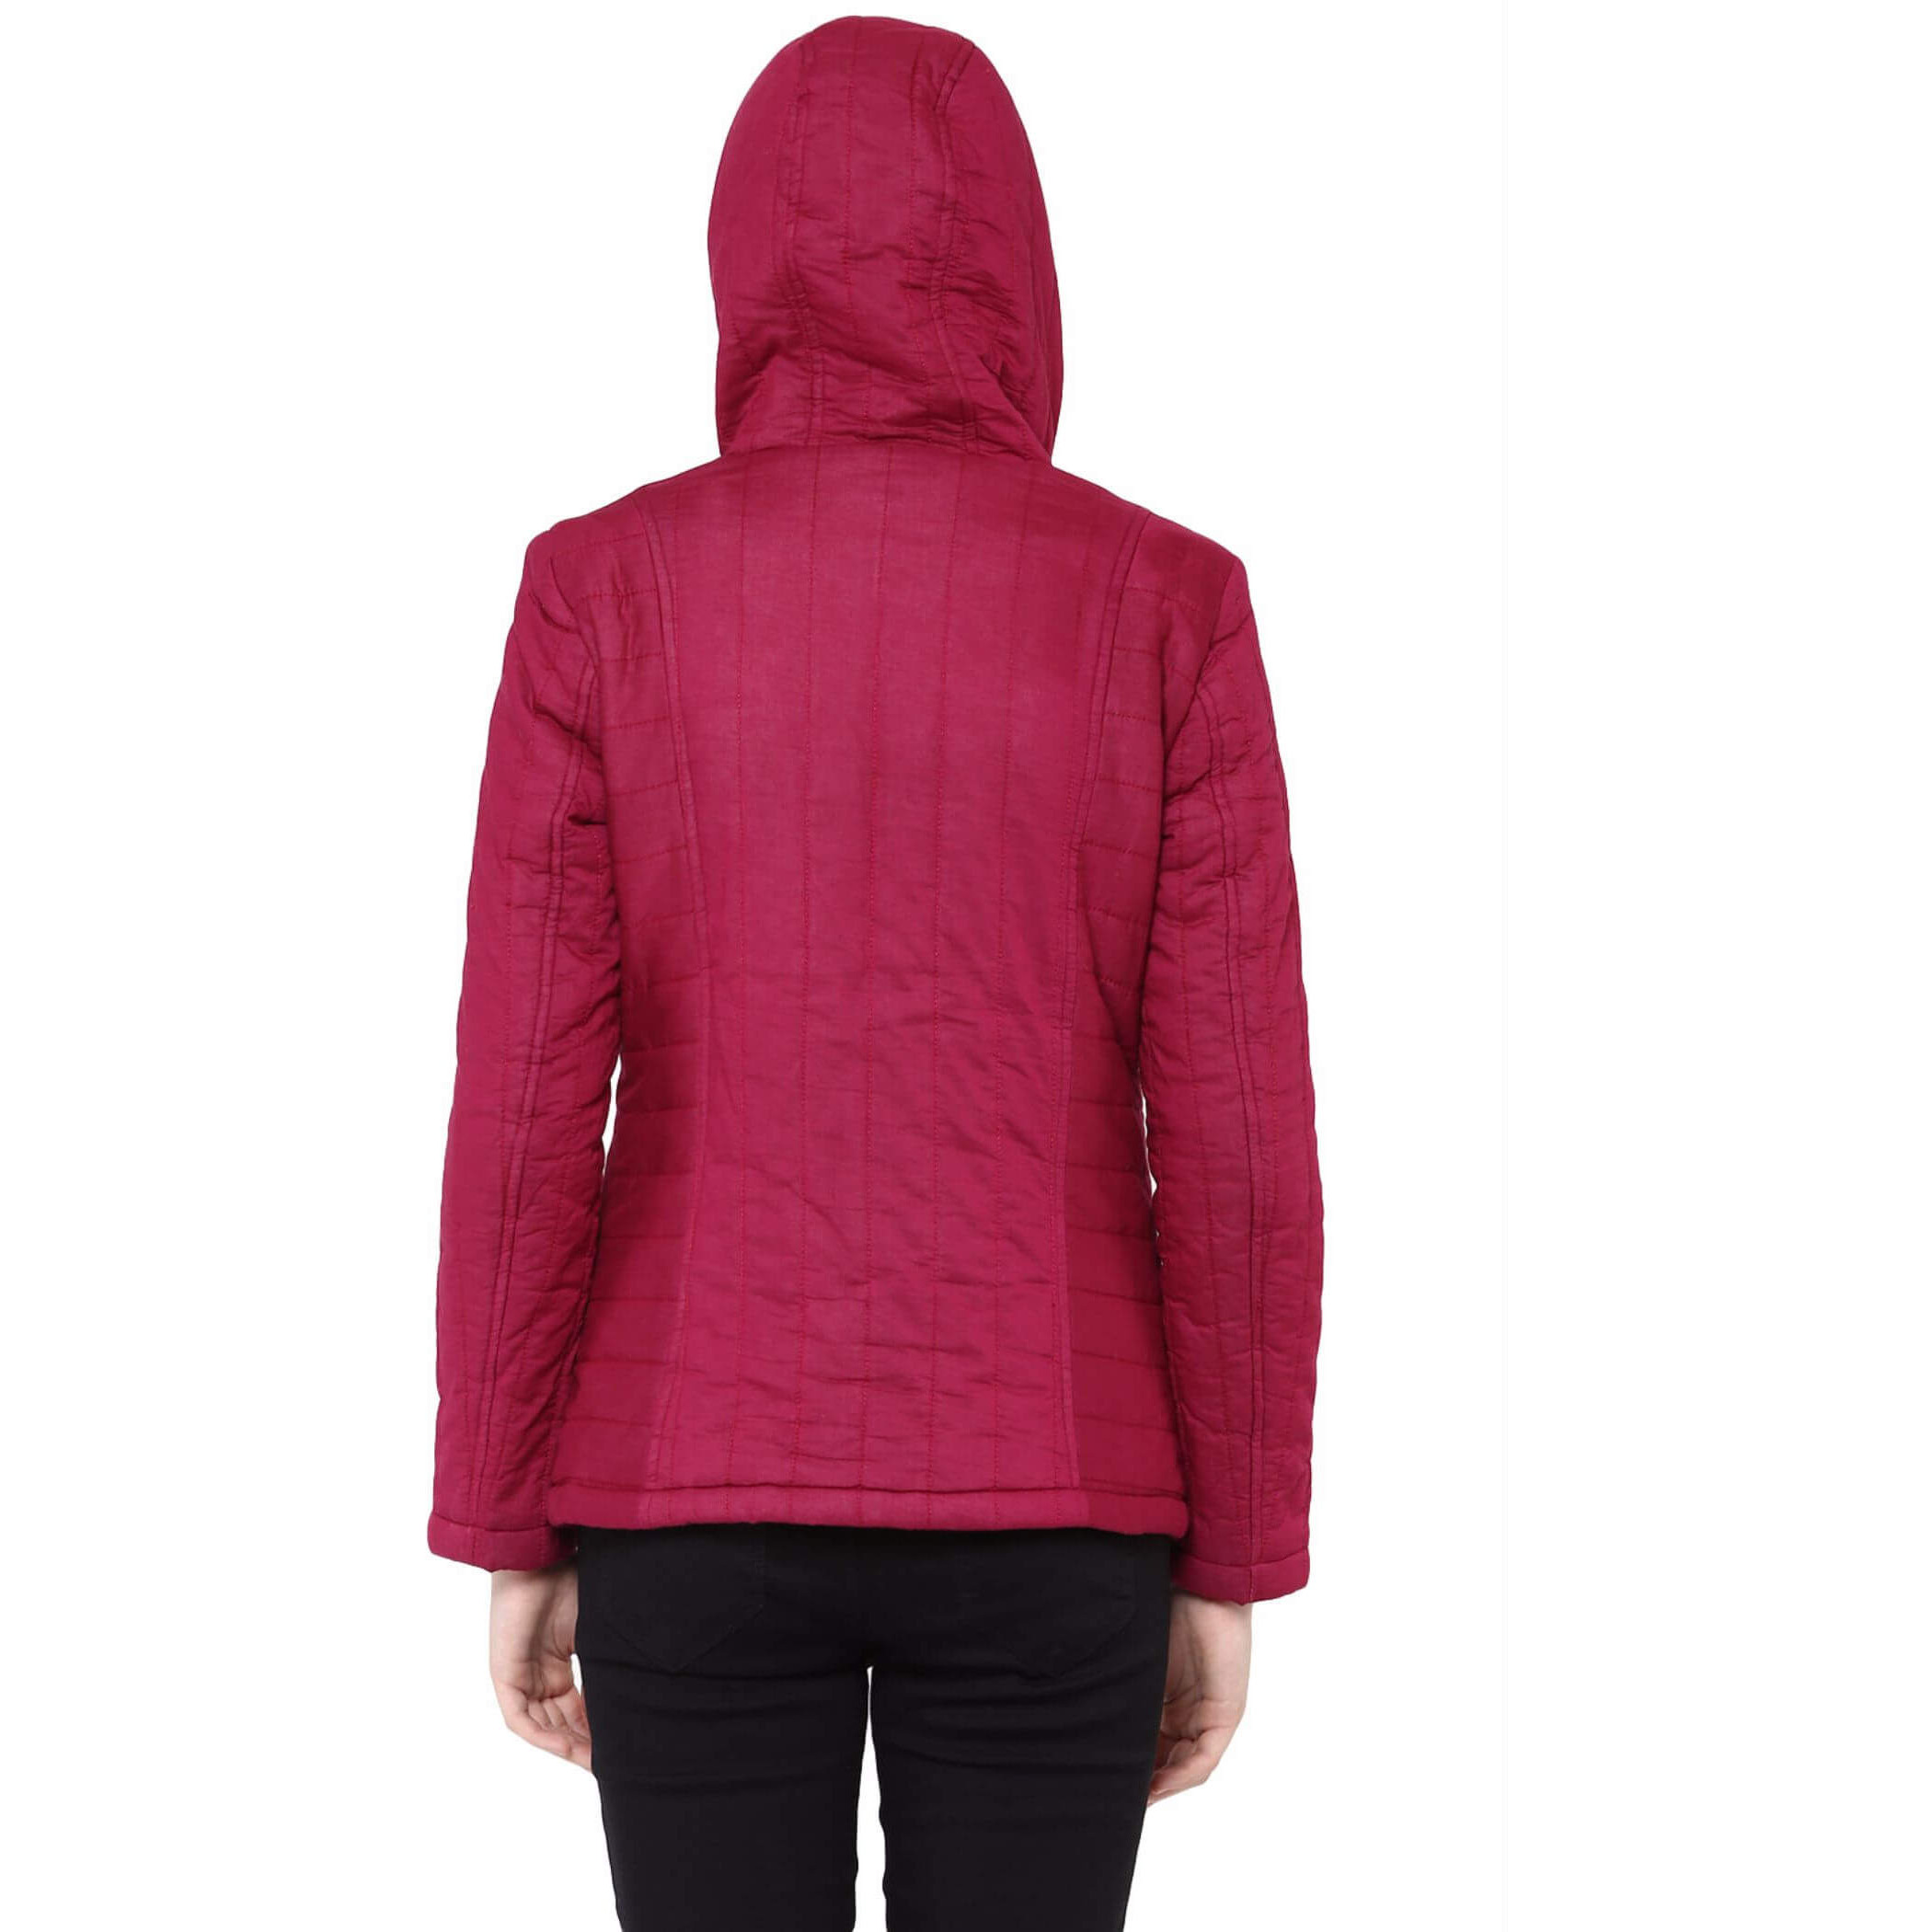 Front Zip Hooded Jacket In Solid Marsala Color With Patch Motifs On The Front (Size:S)